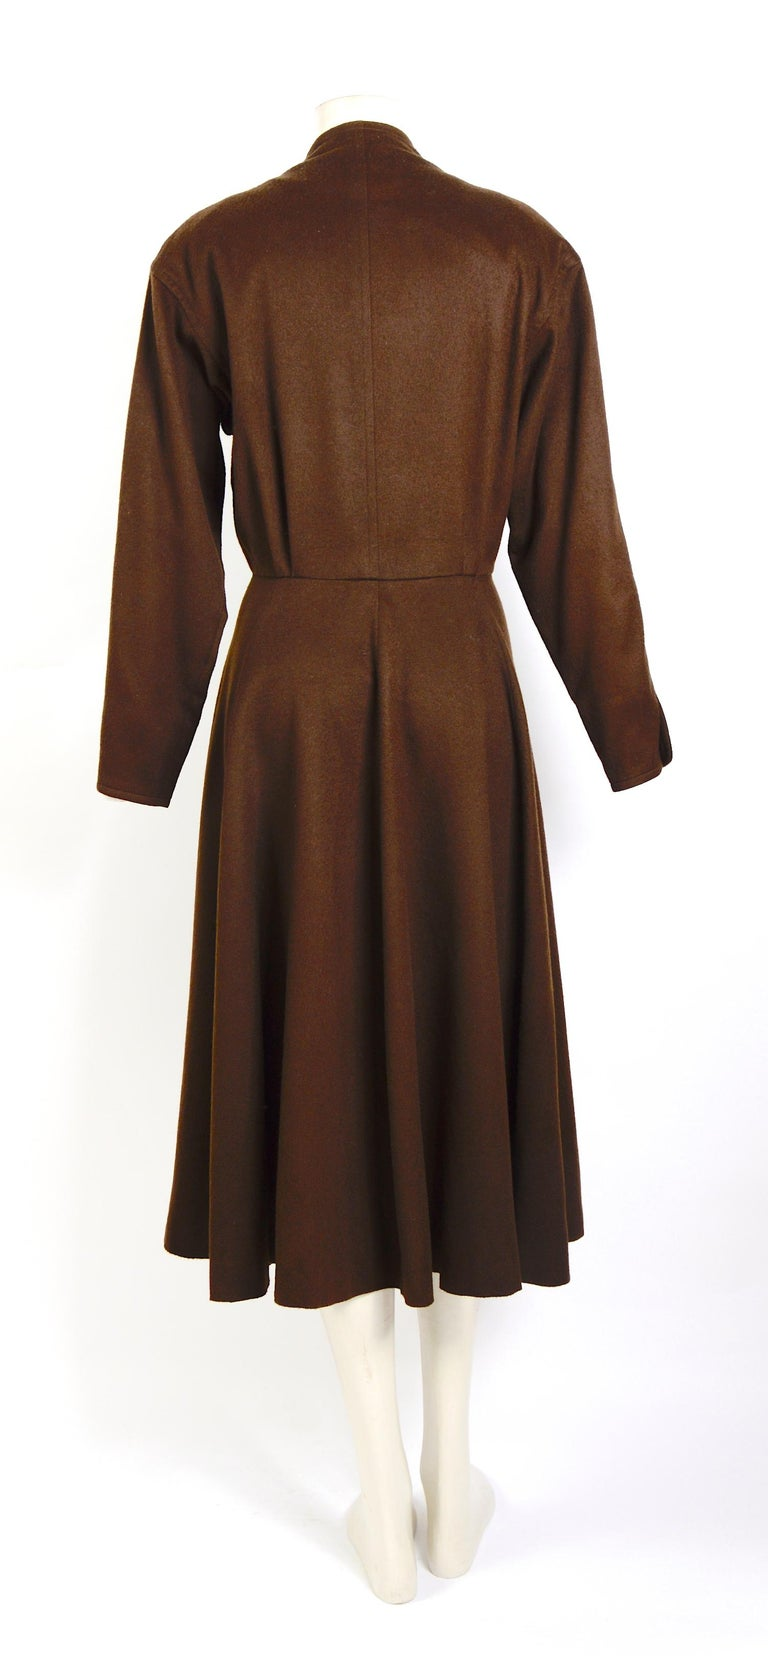 Women's Yves Saint Laurent vintage 1970s brown wool winter dress For Sale